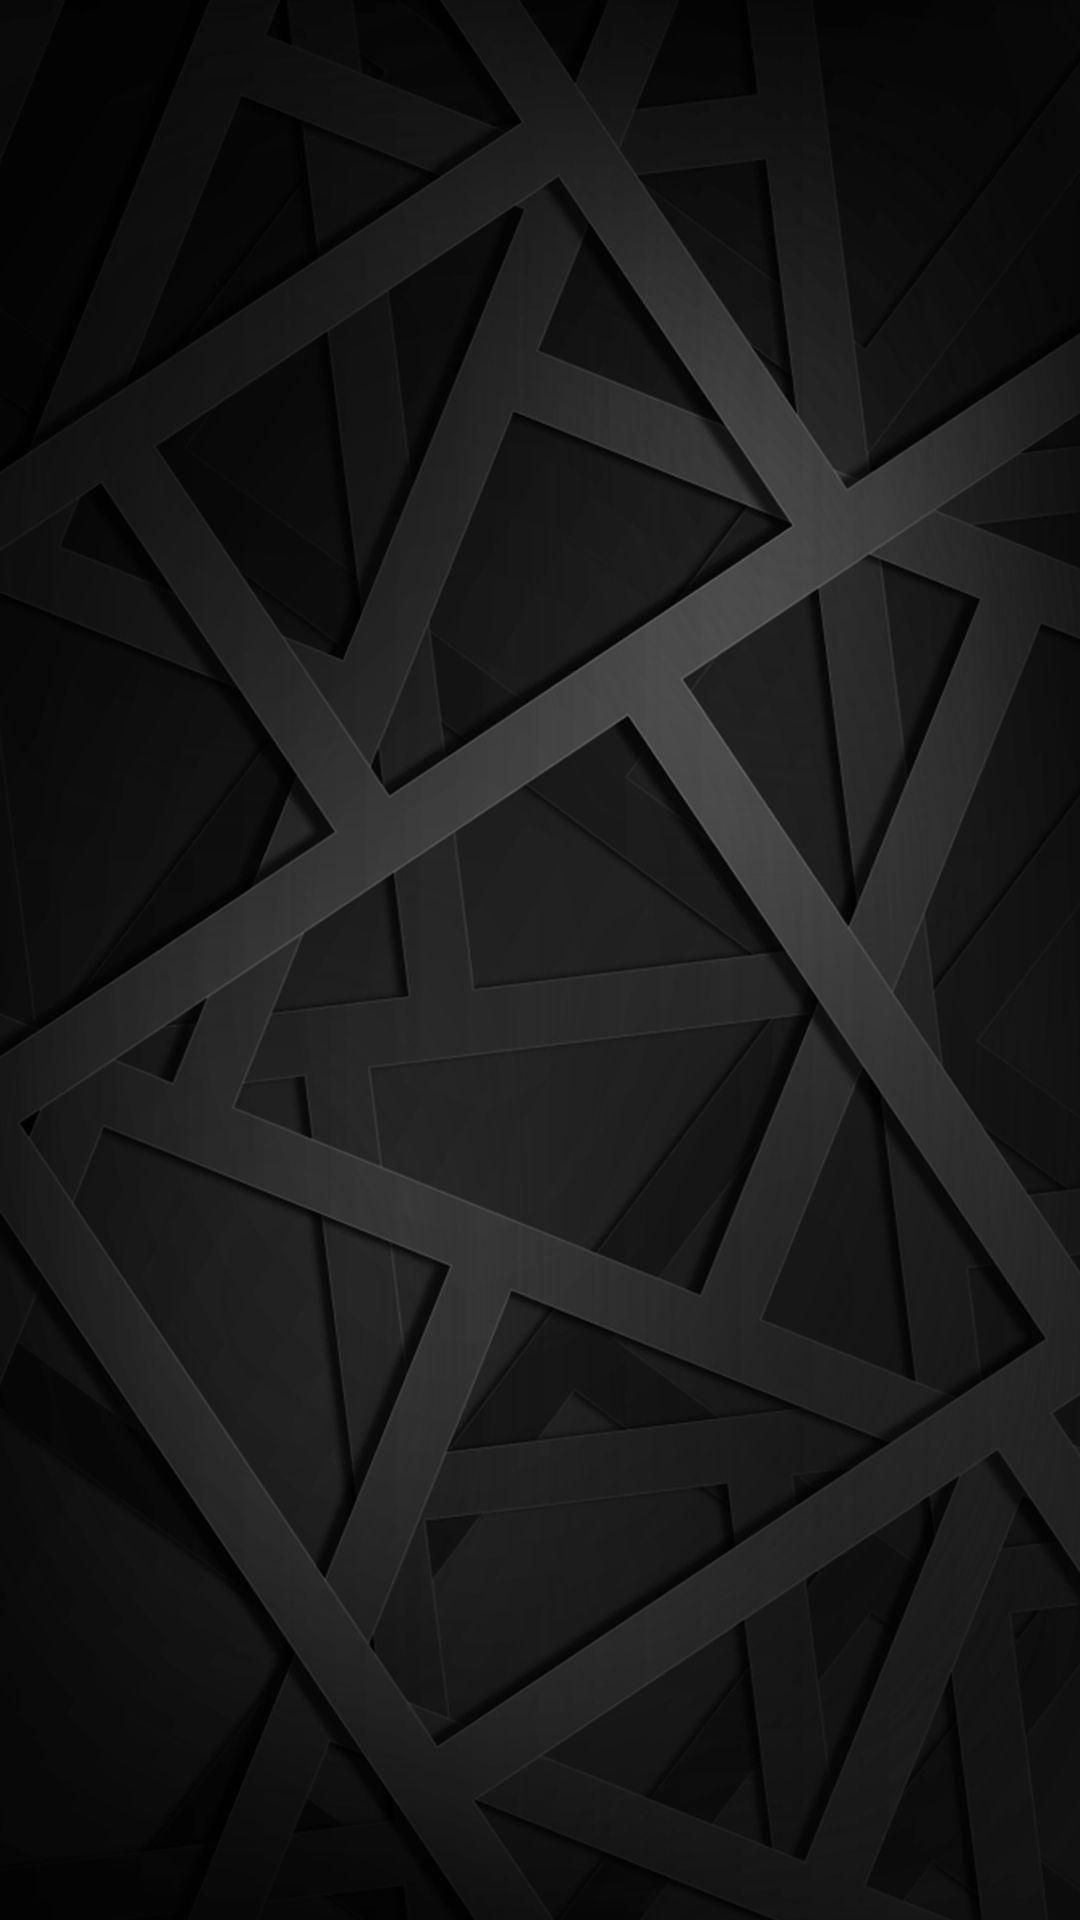 Geometric Grey And Gold Hd Wallpaper Android Black Phone Wallpaper Android Wallpaper Black Geometric Wallpaper Iphone